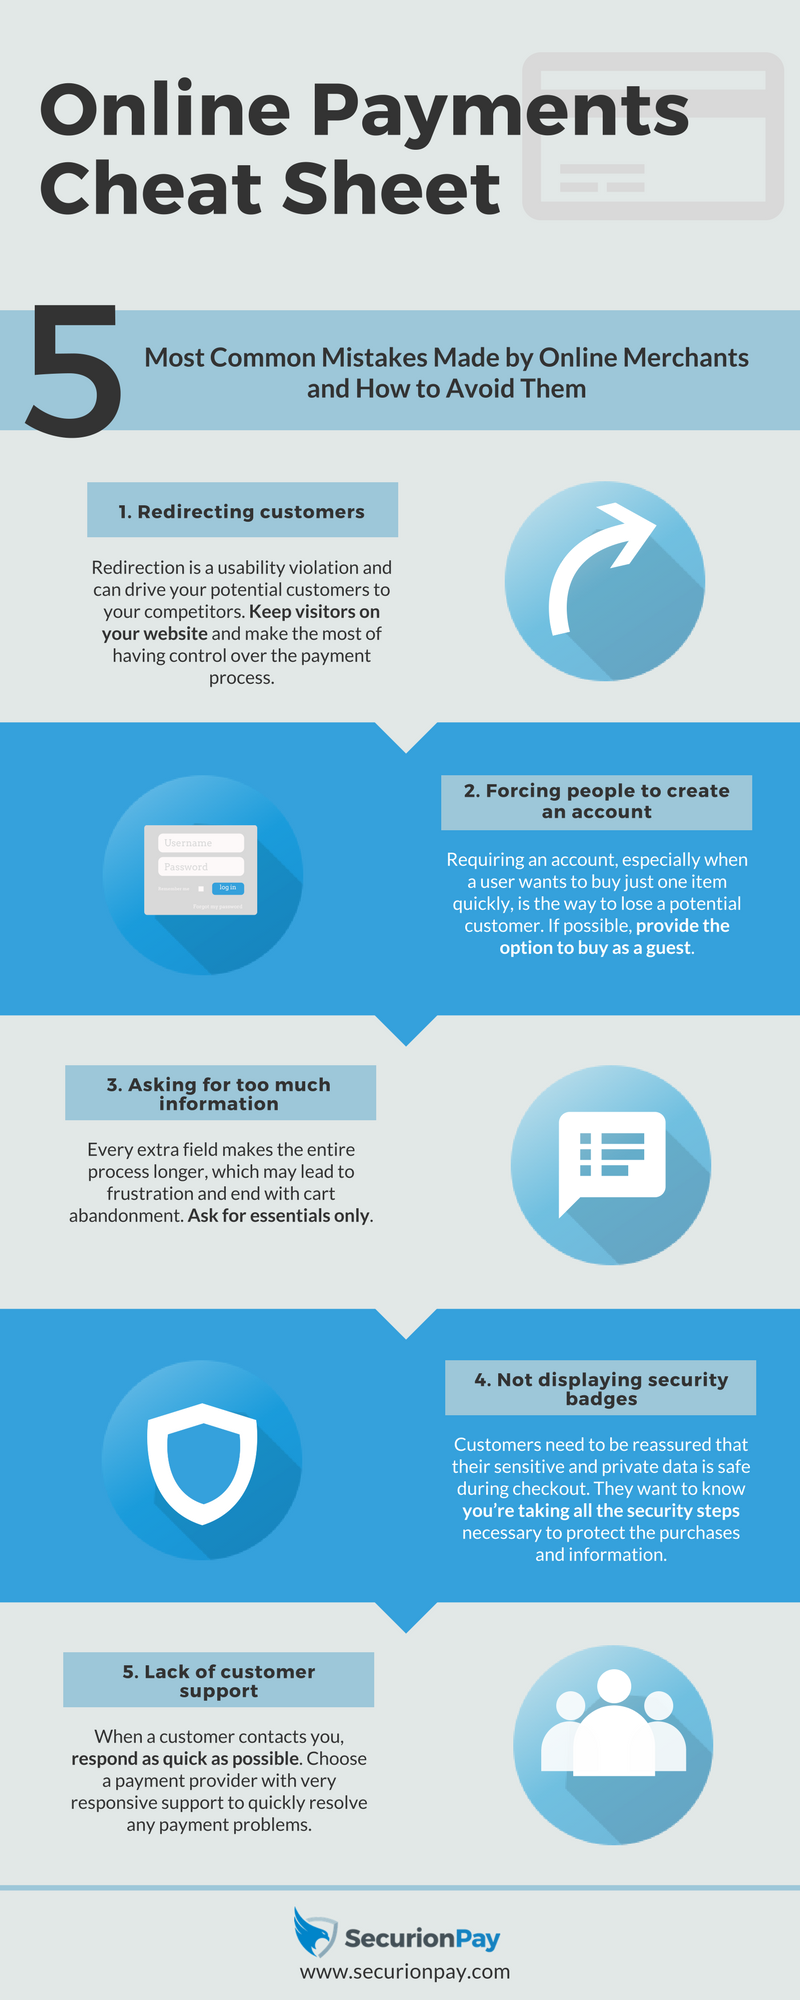 Online Payments Cheat Sheet - infographic